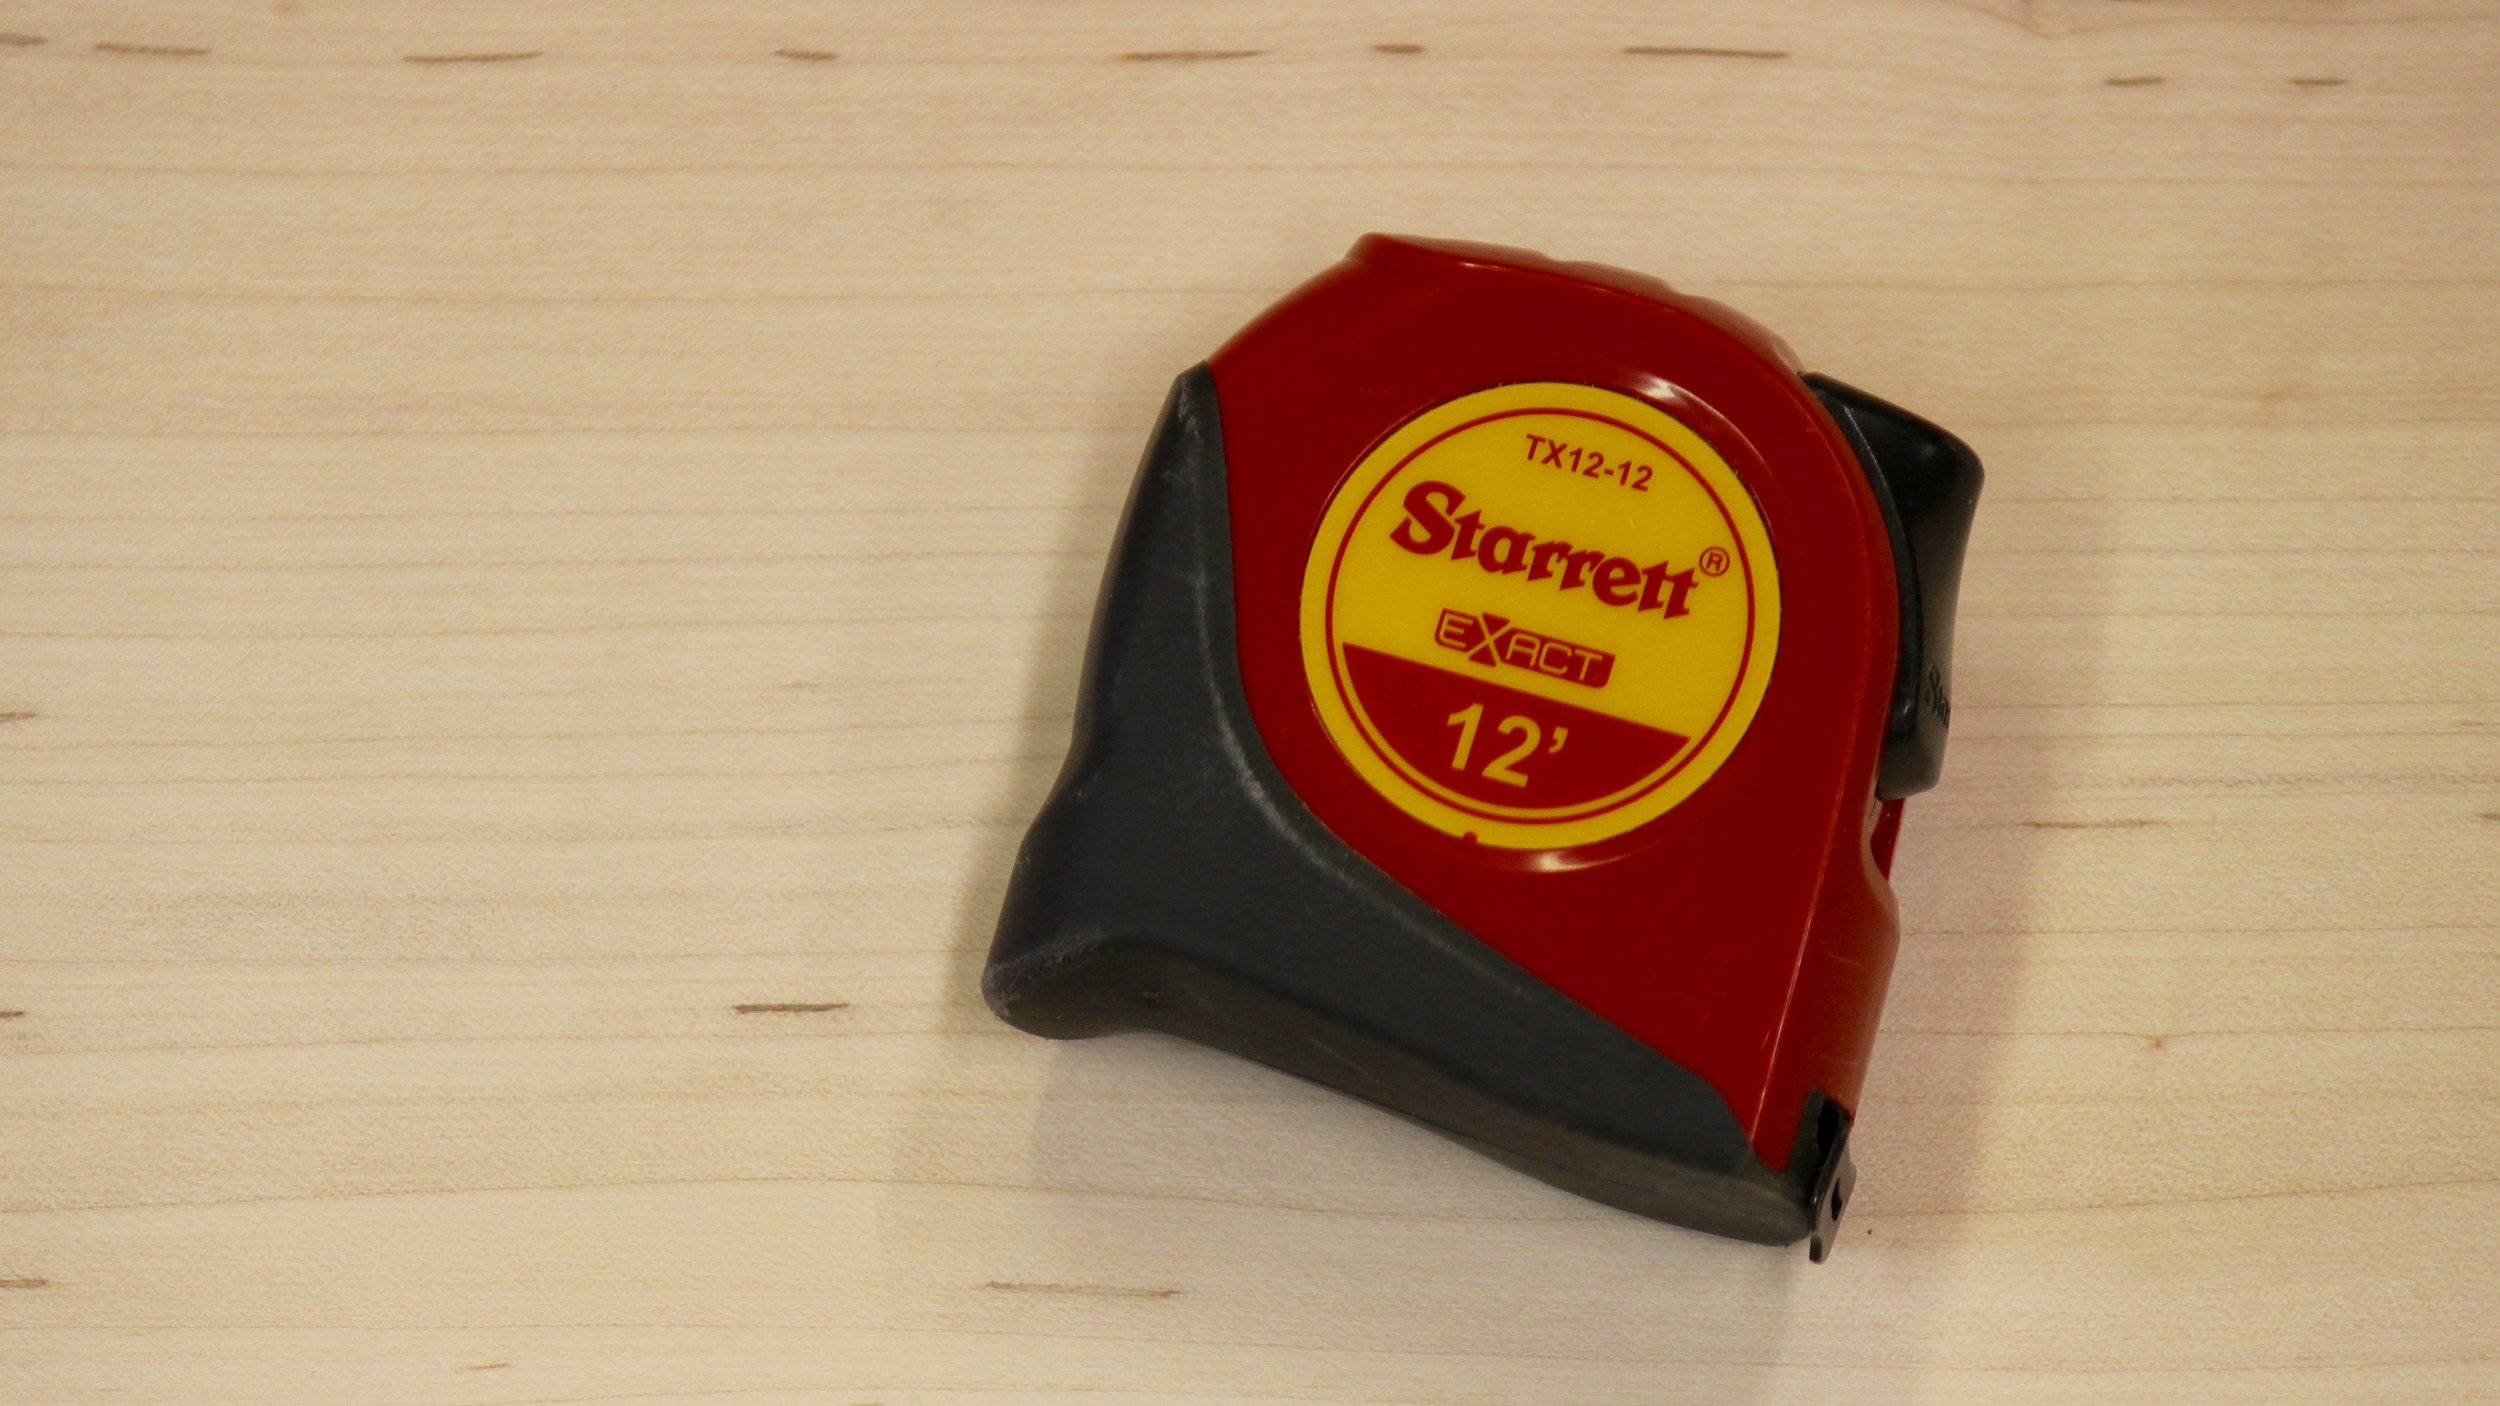 Figure 2 - The 12' Starrett Exact tape is just about perfect for woodworkers. Note the rubberized bottom half and the attractive color.